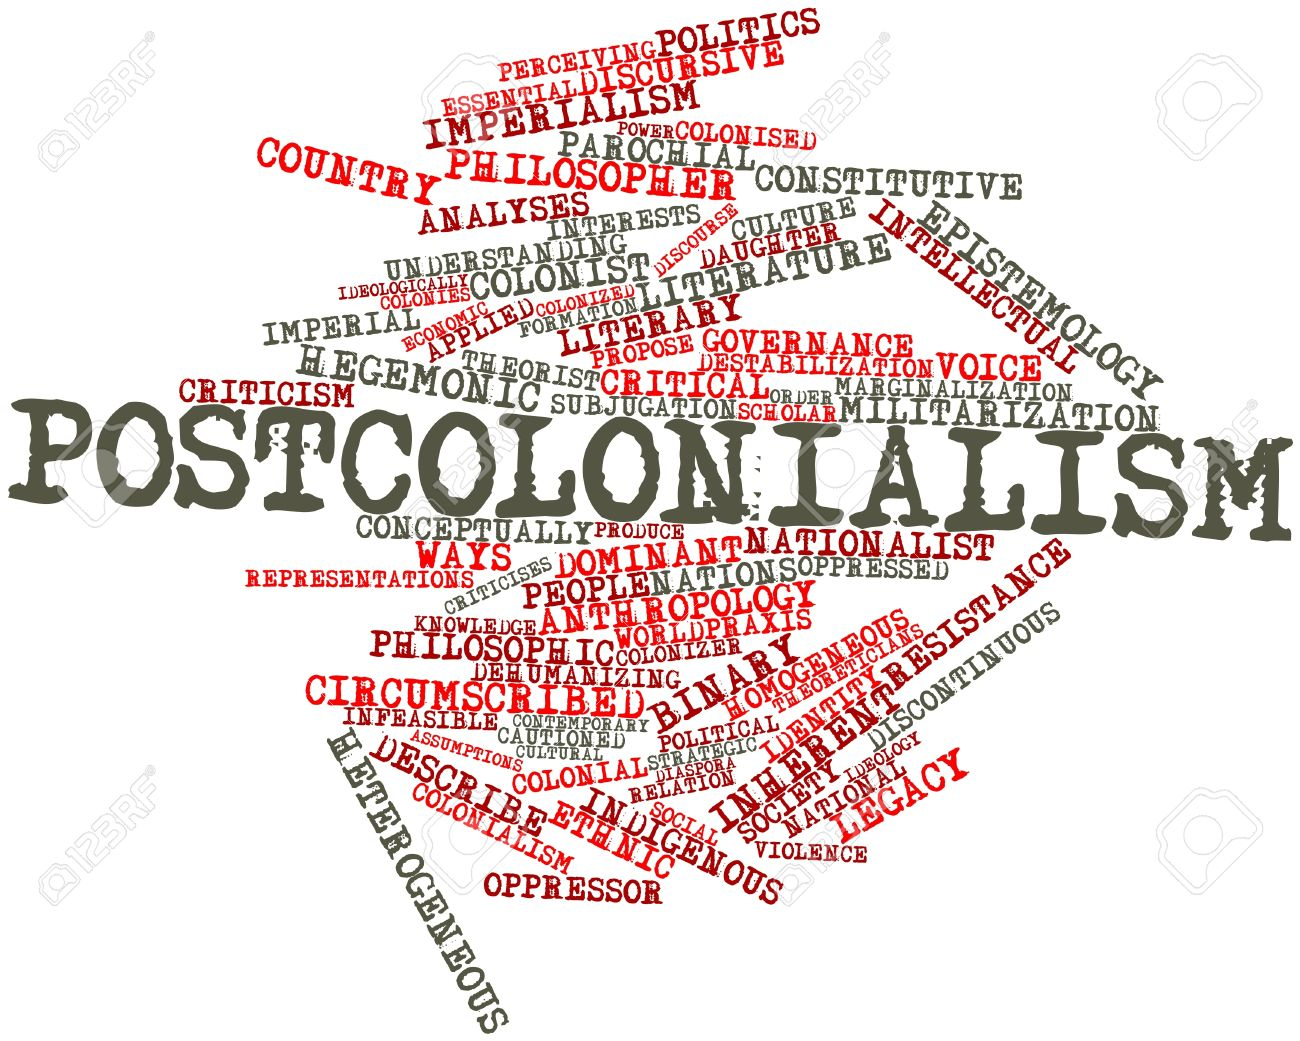 https://repeatingislands.files.wordpress.com/2015/09/16739678-abstract-word-cloud-for-postcolonialism-with-related-tags-and-terms-stock-photo.jpg